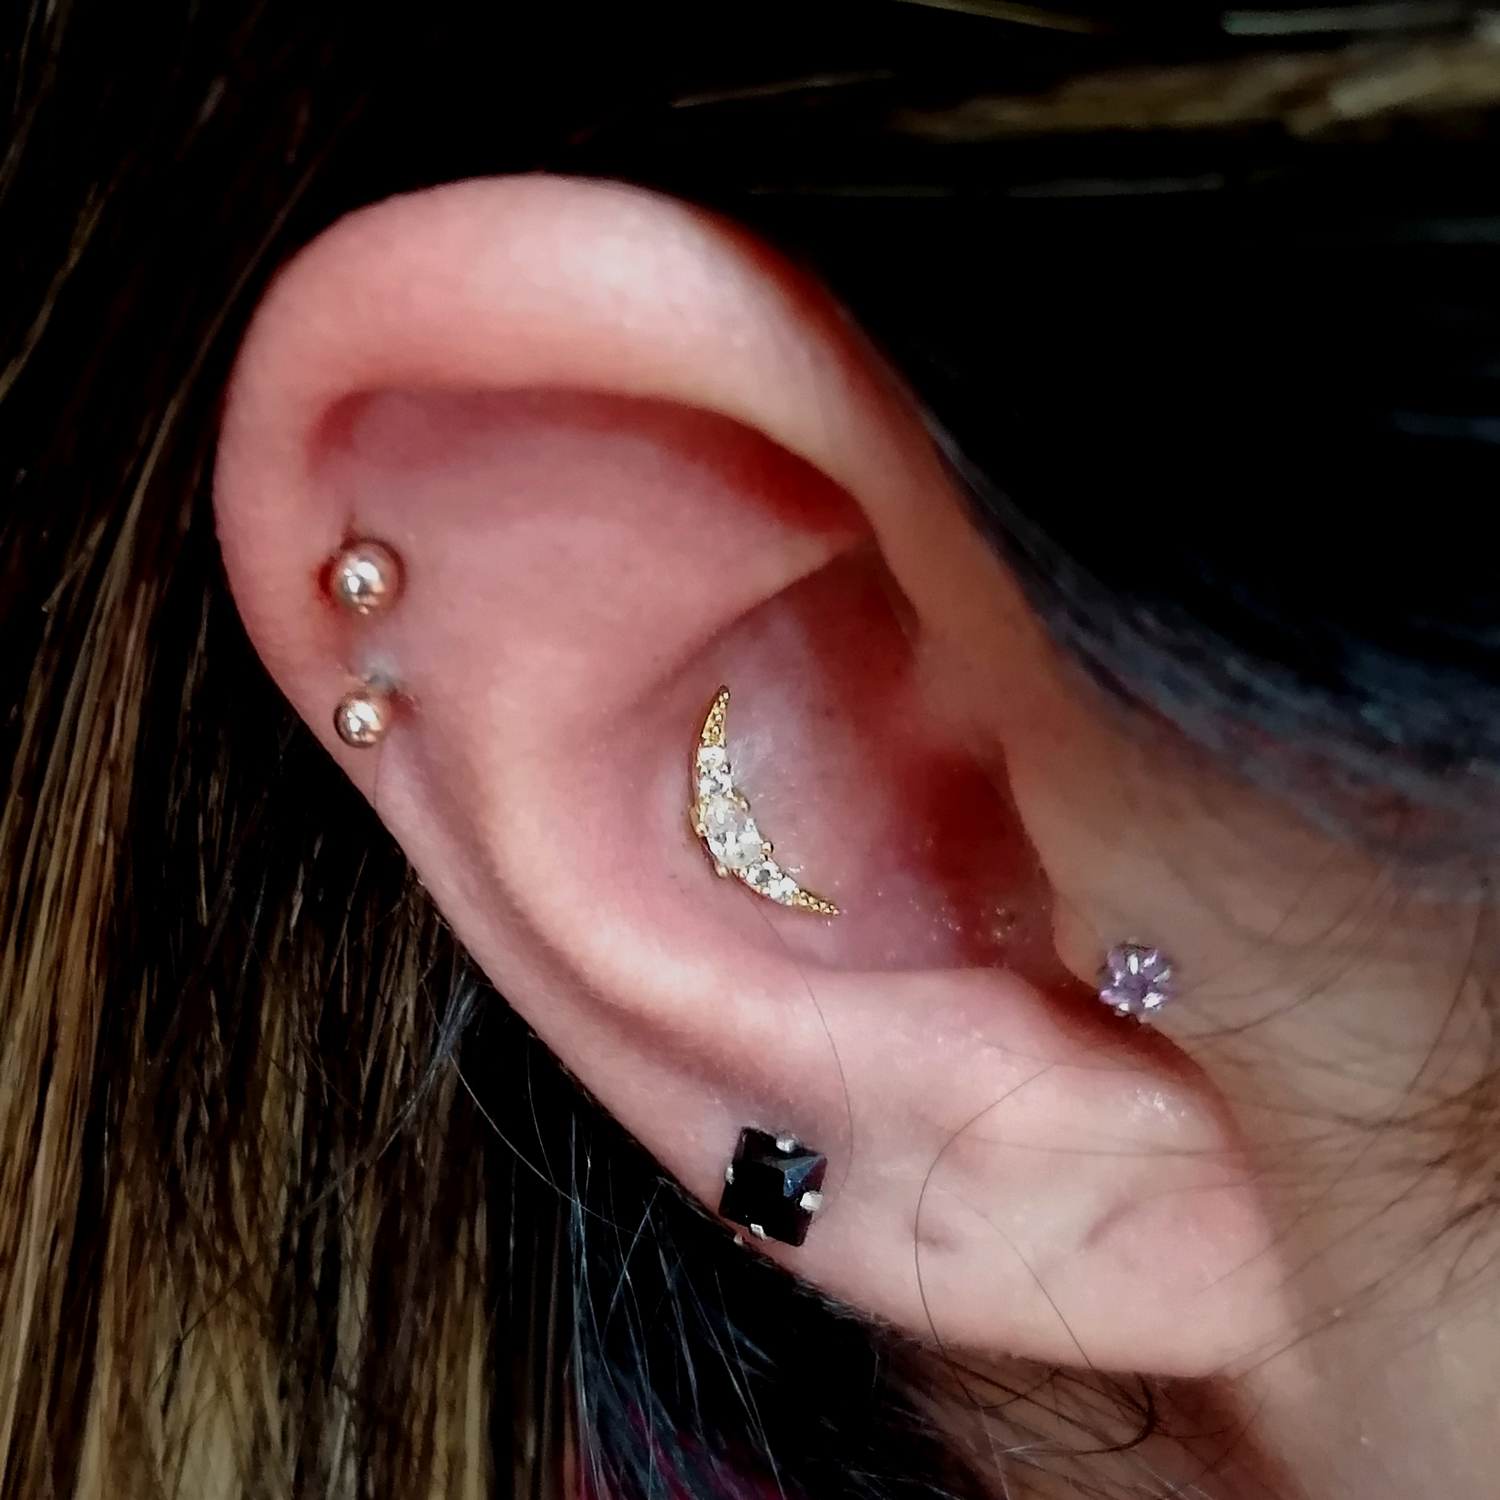 conch,moon,ay,piercing,fiyat